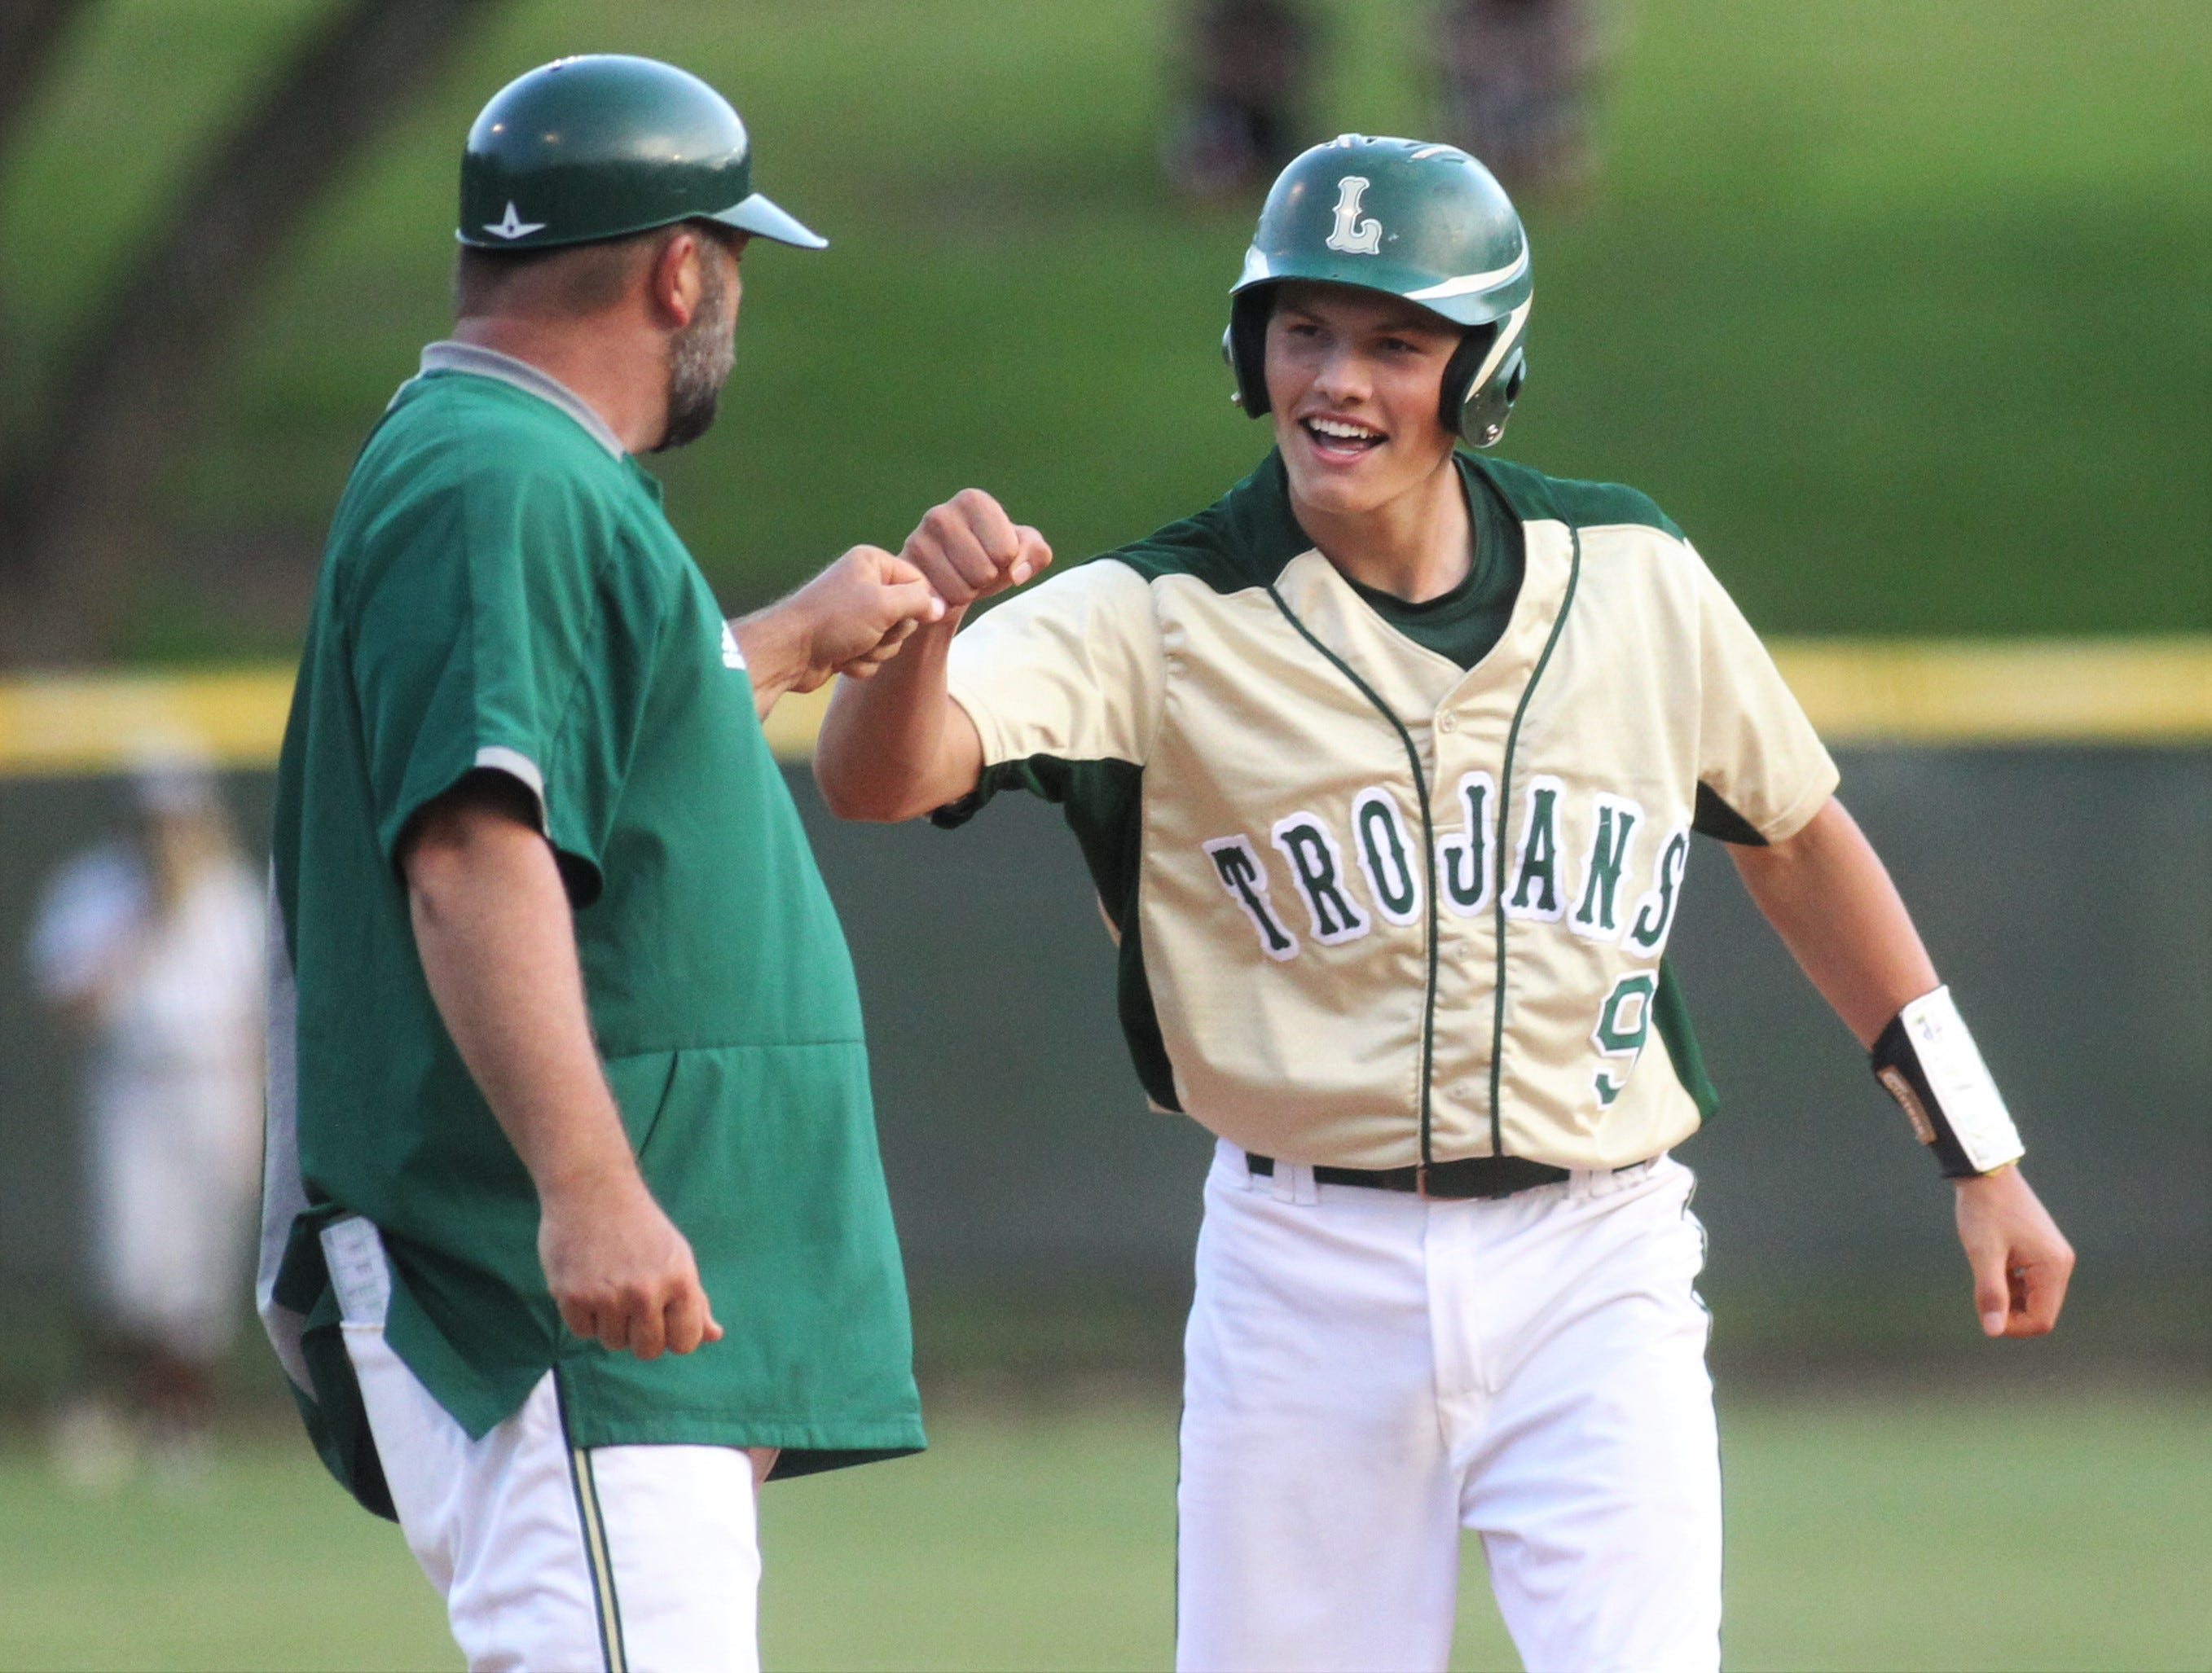 Lincoln juniro Parker Wakeman fist bumps head coach Mike Gauger after reaching third base as Lincoln baseball beat Chiles 5-4  in 10 innings during a District 2-8A championship game on Thursday, May 9, 2019.